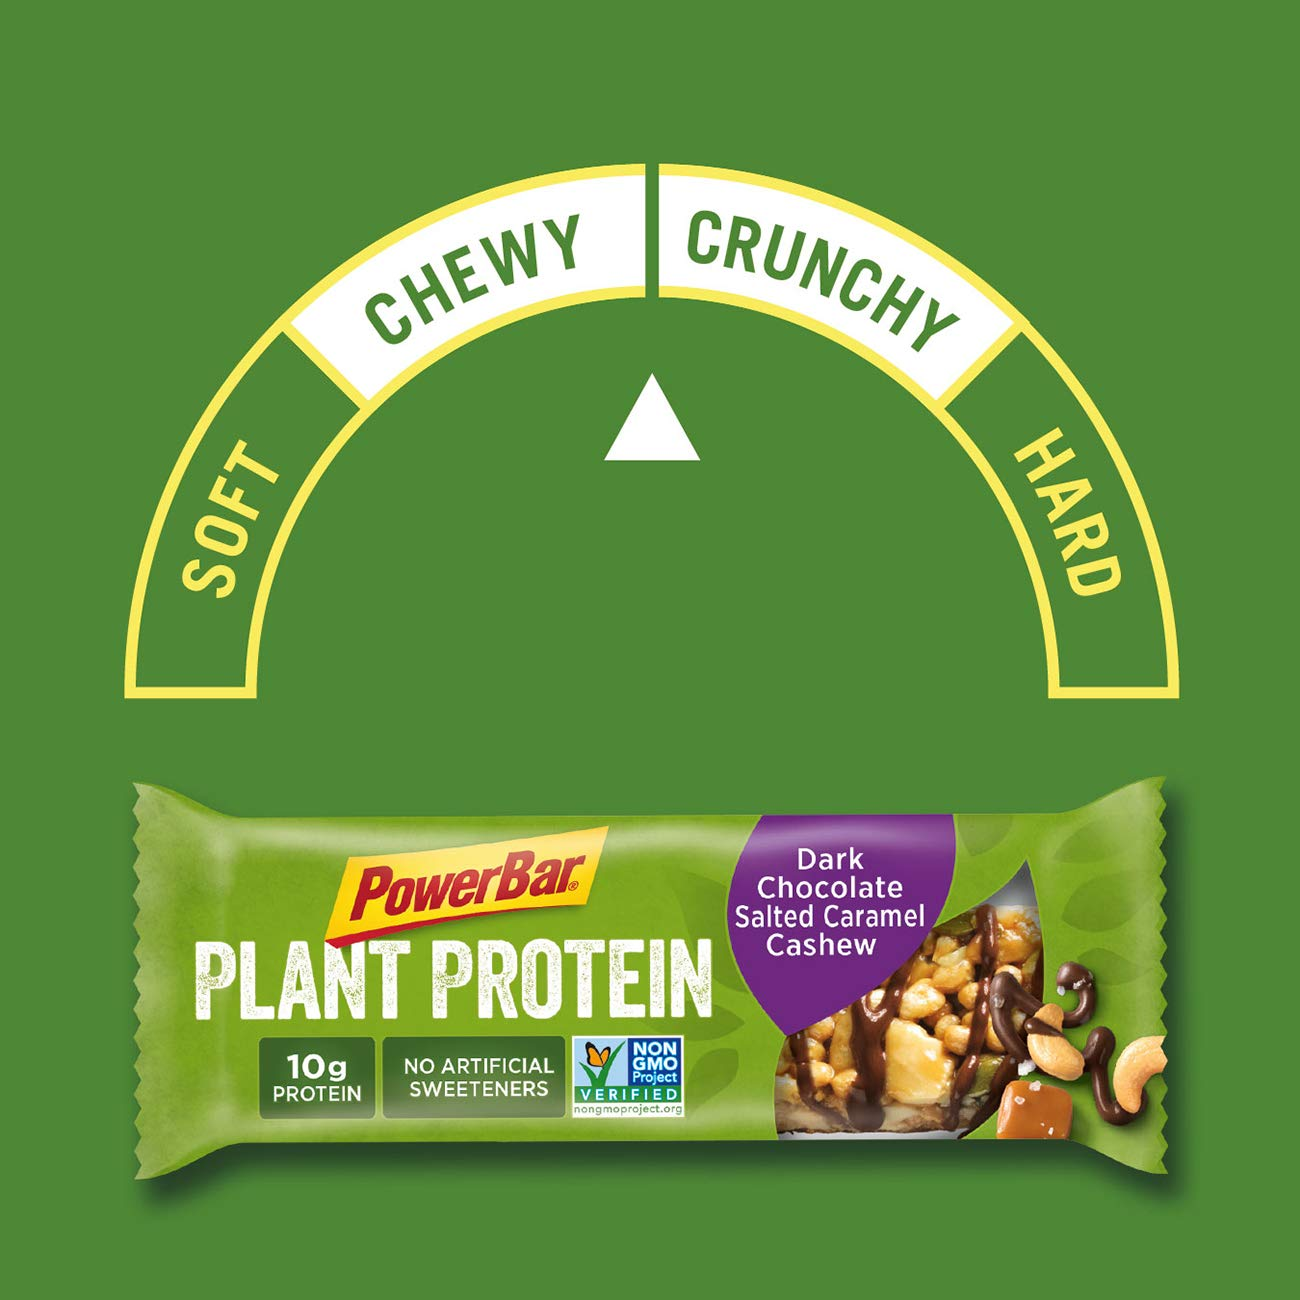 PowerBar Plant Protein Bar, Dark Chocolate Salted Caramel Cashew, 15 Count, Pack of 1 by Powerbar (Image #7)